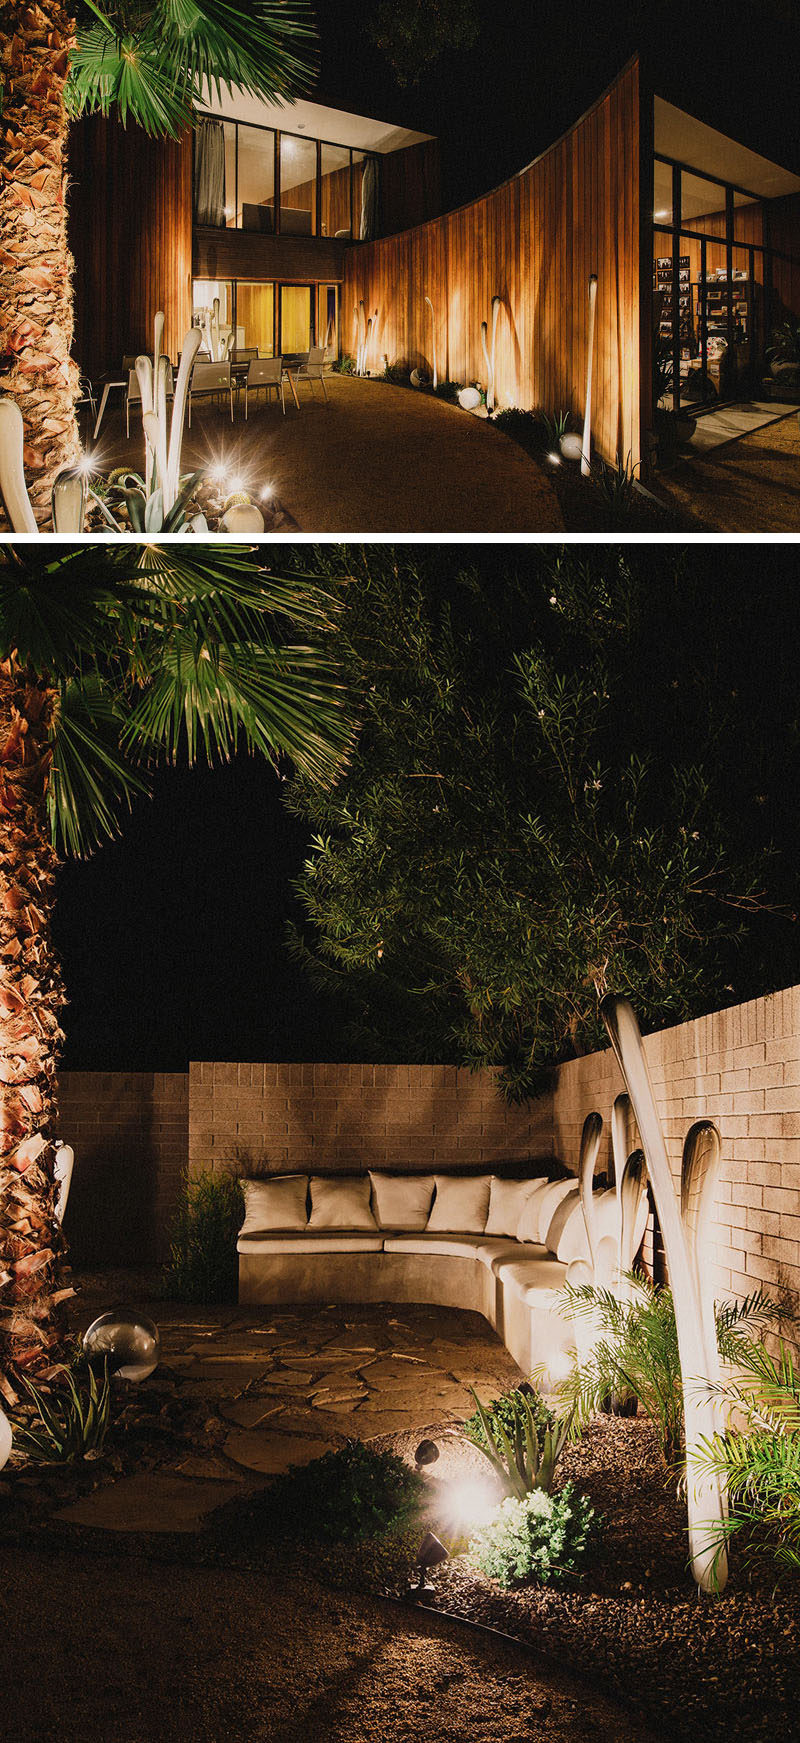 8 Outdoor Lighting Ideas To Inspire Your Spring Backyard Makeover / Uplighting - Make a statement in your backyard and garden by positioning lights under trees and plants as well as right up against a wall. It'll brighten the space while also making it look more dramatic and cozy.